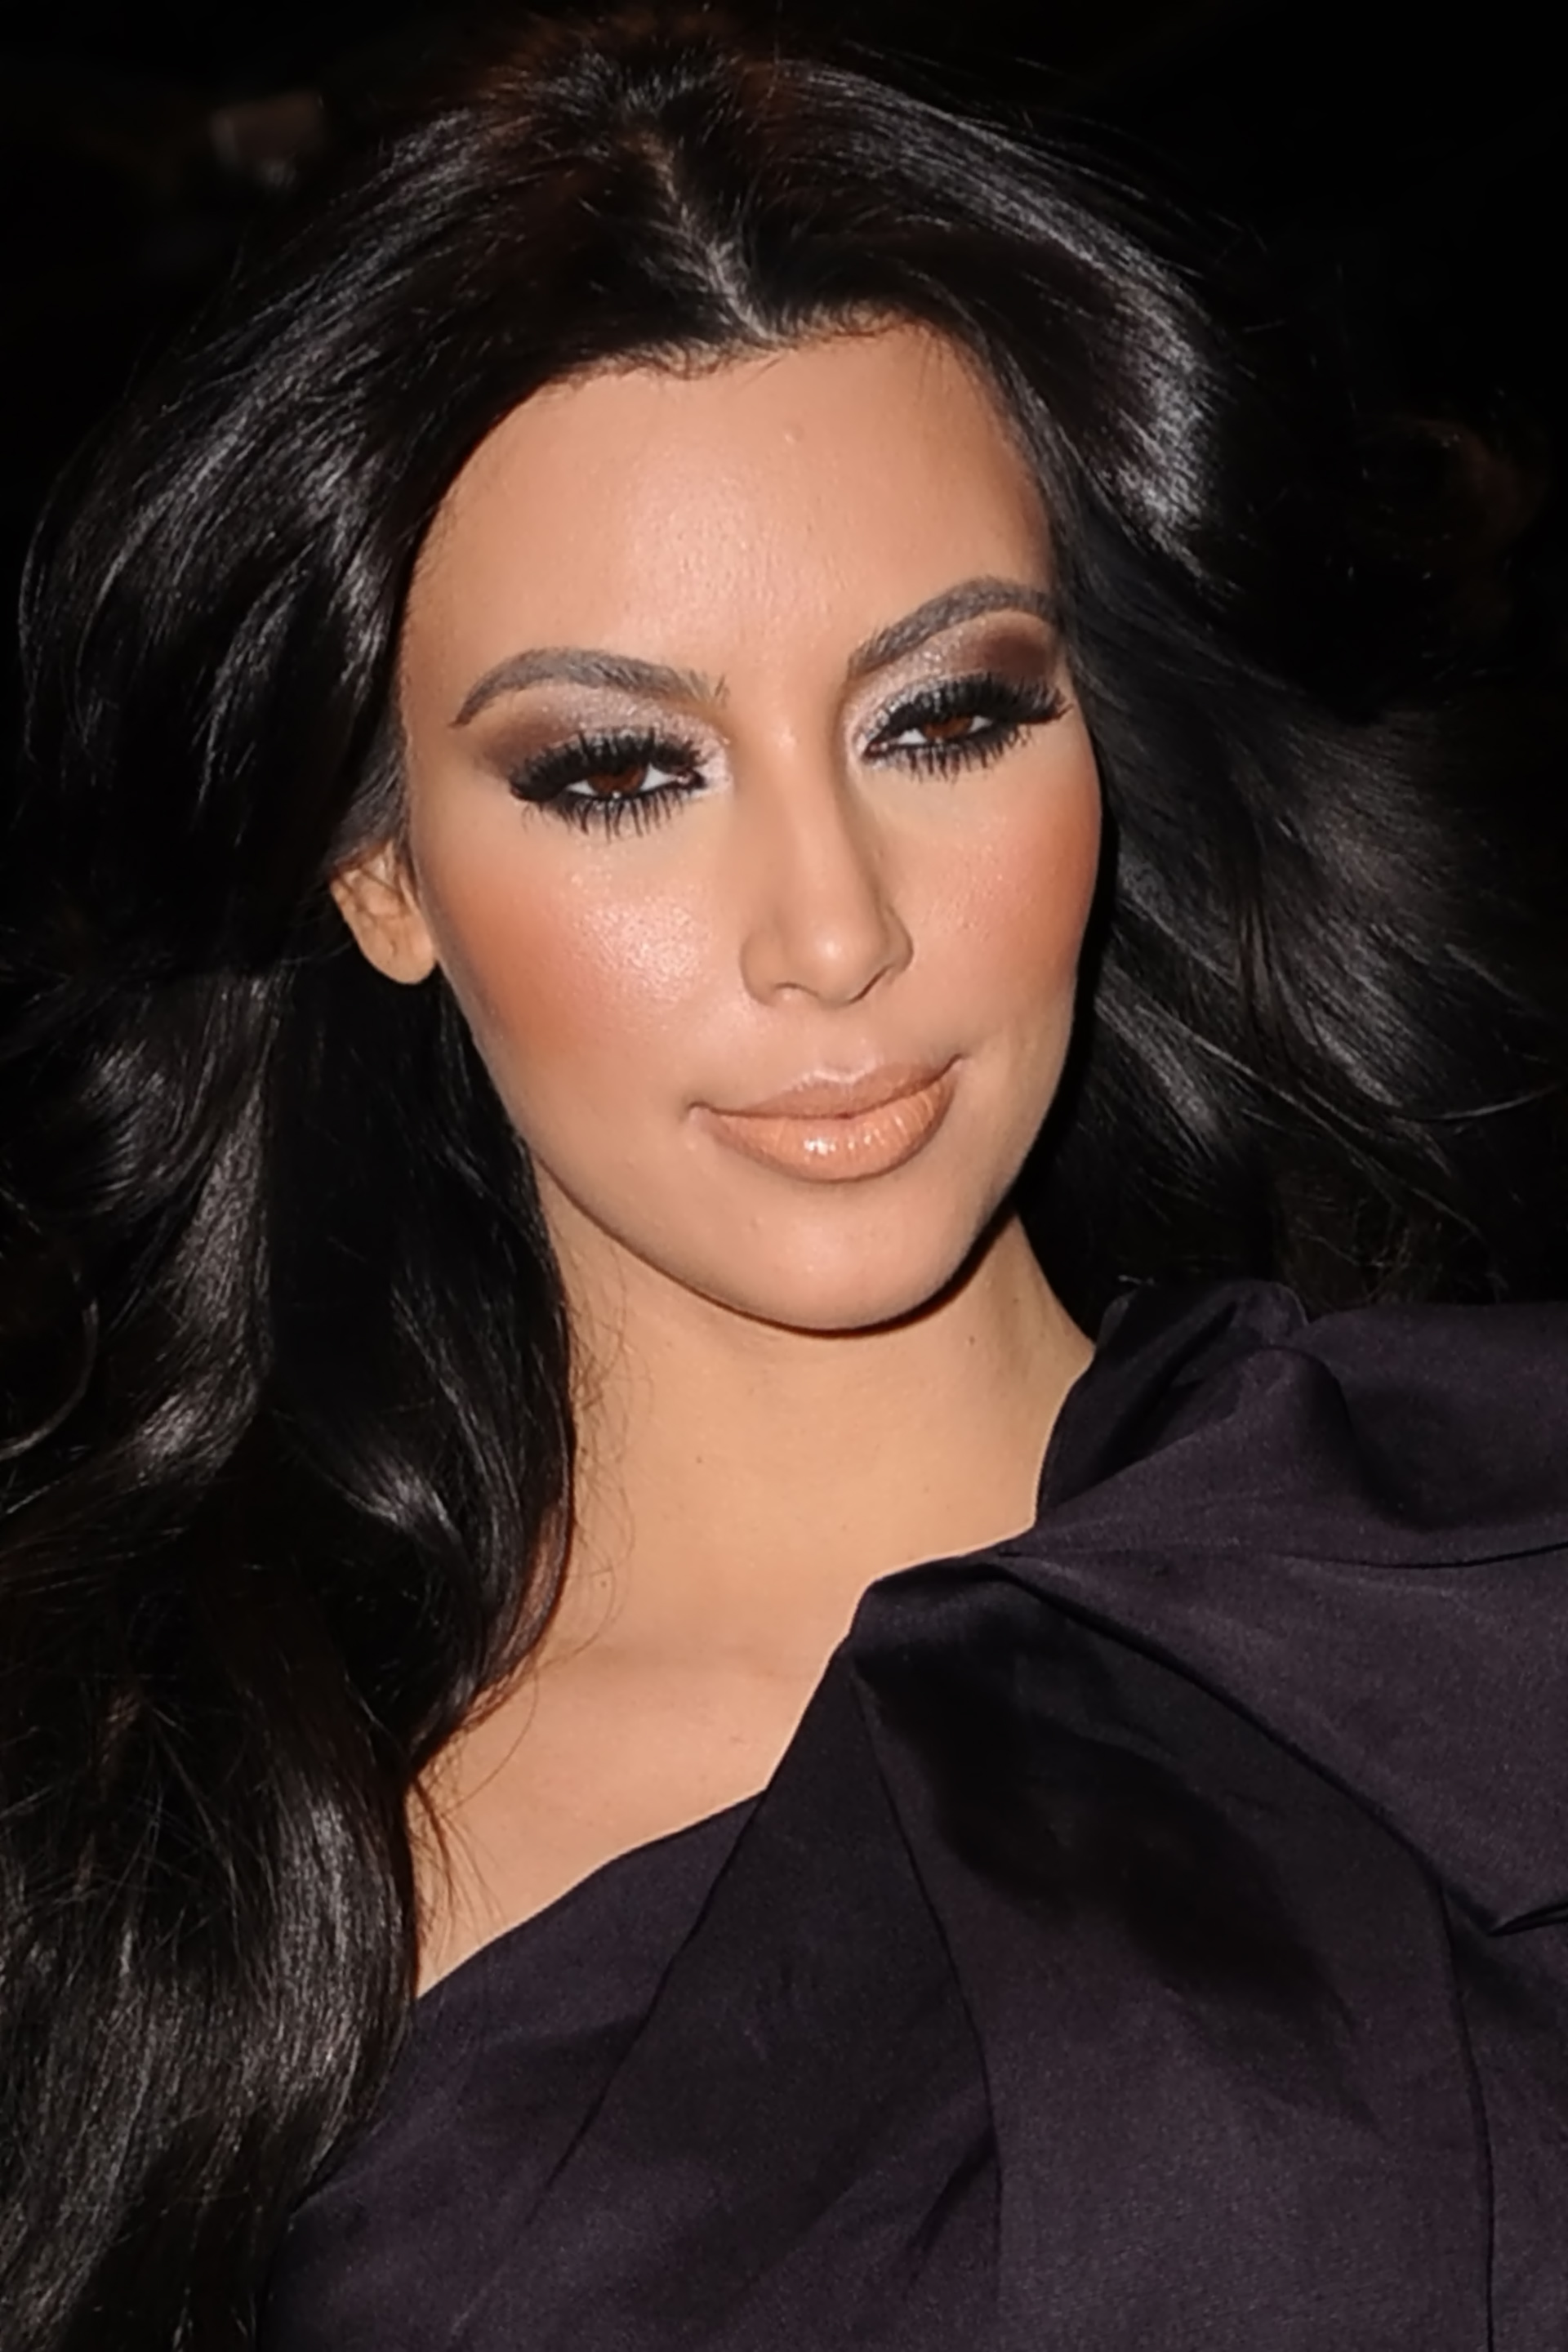 download Kim Kardashian Iphone Wallpaper Kim kardashian 1